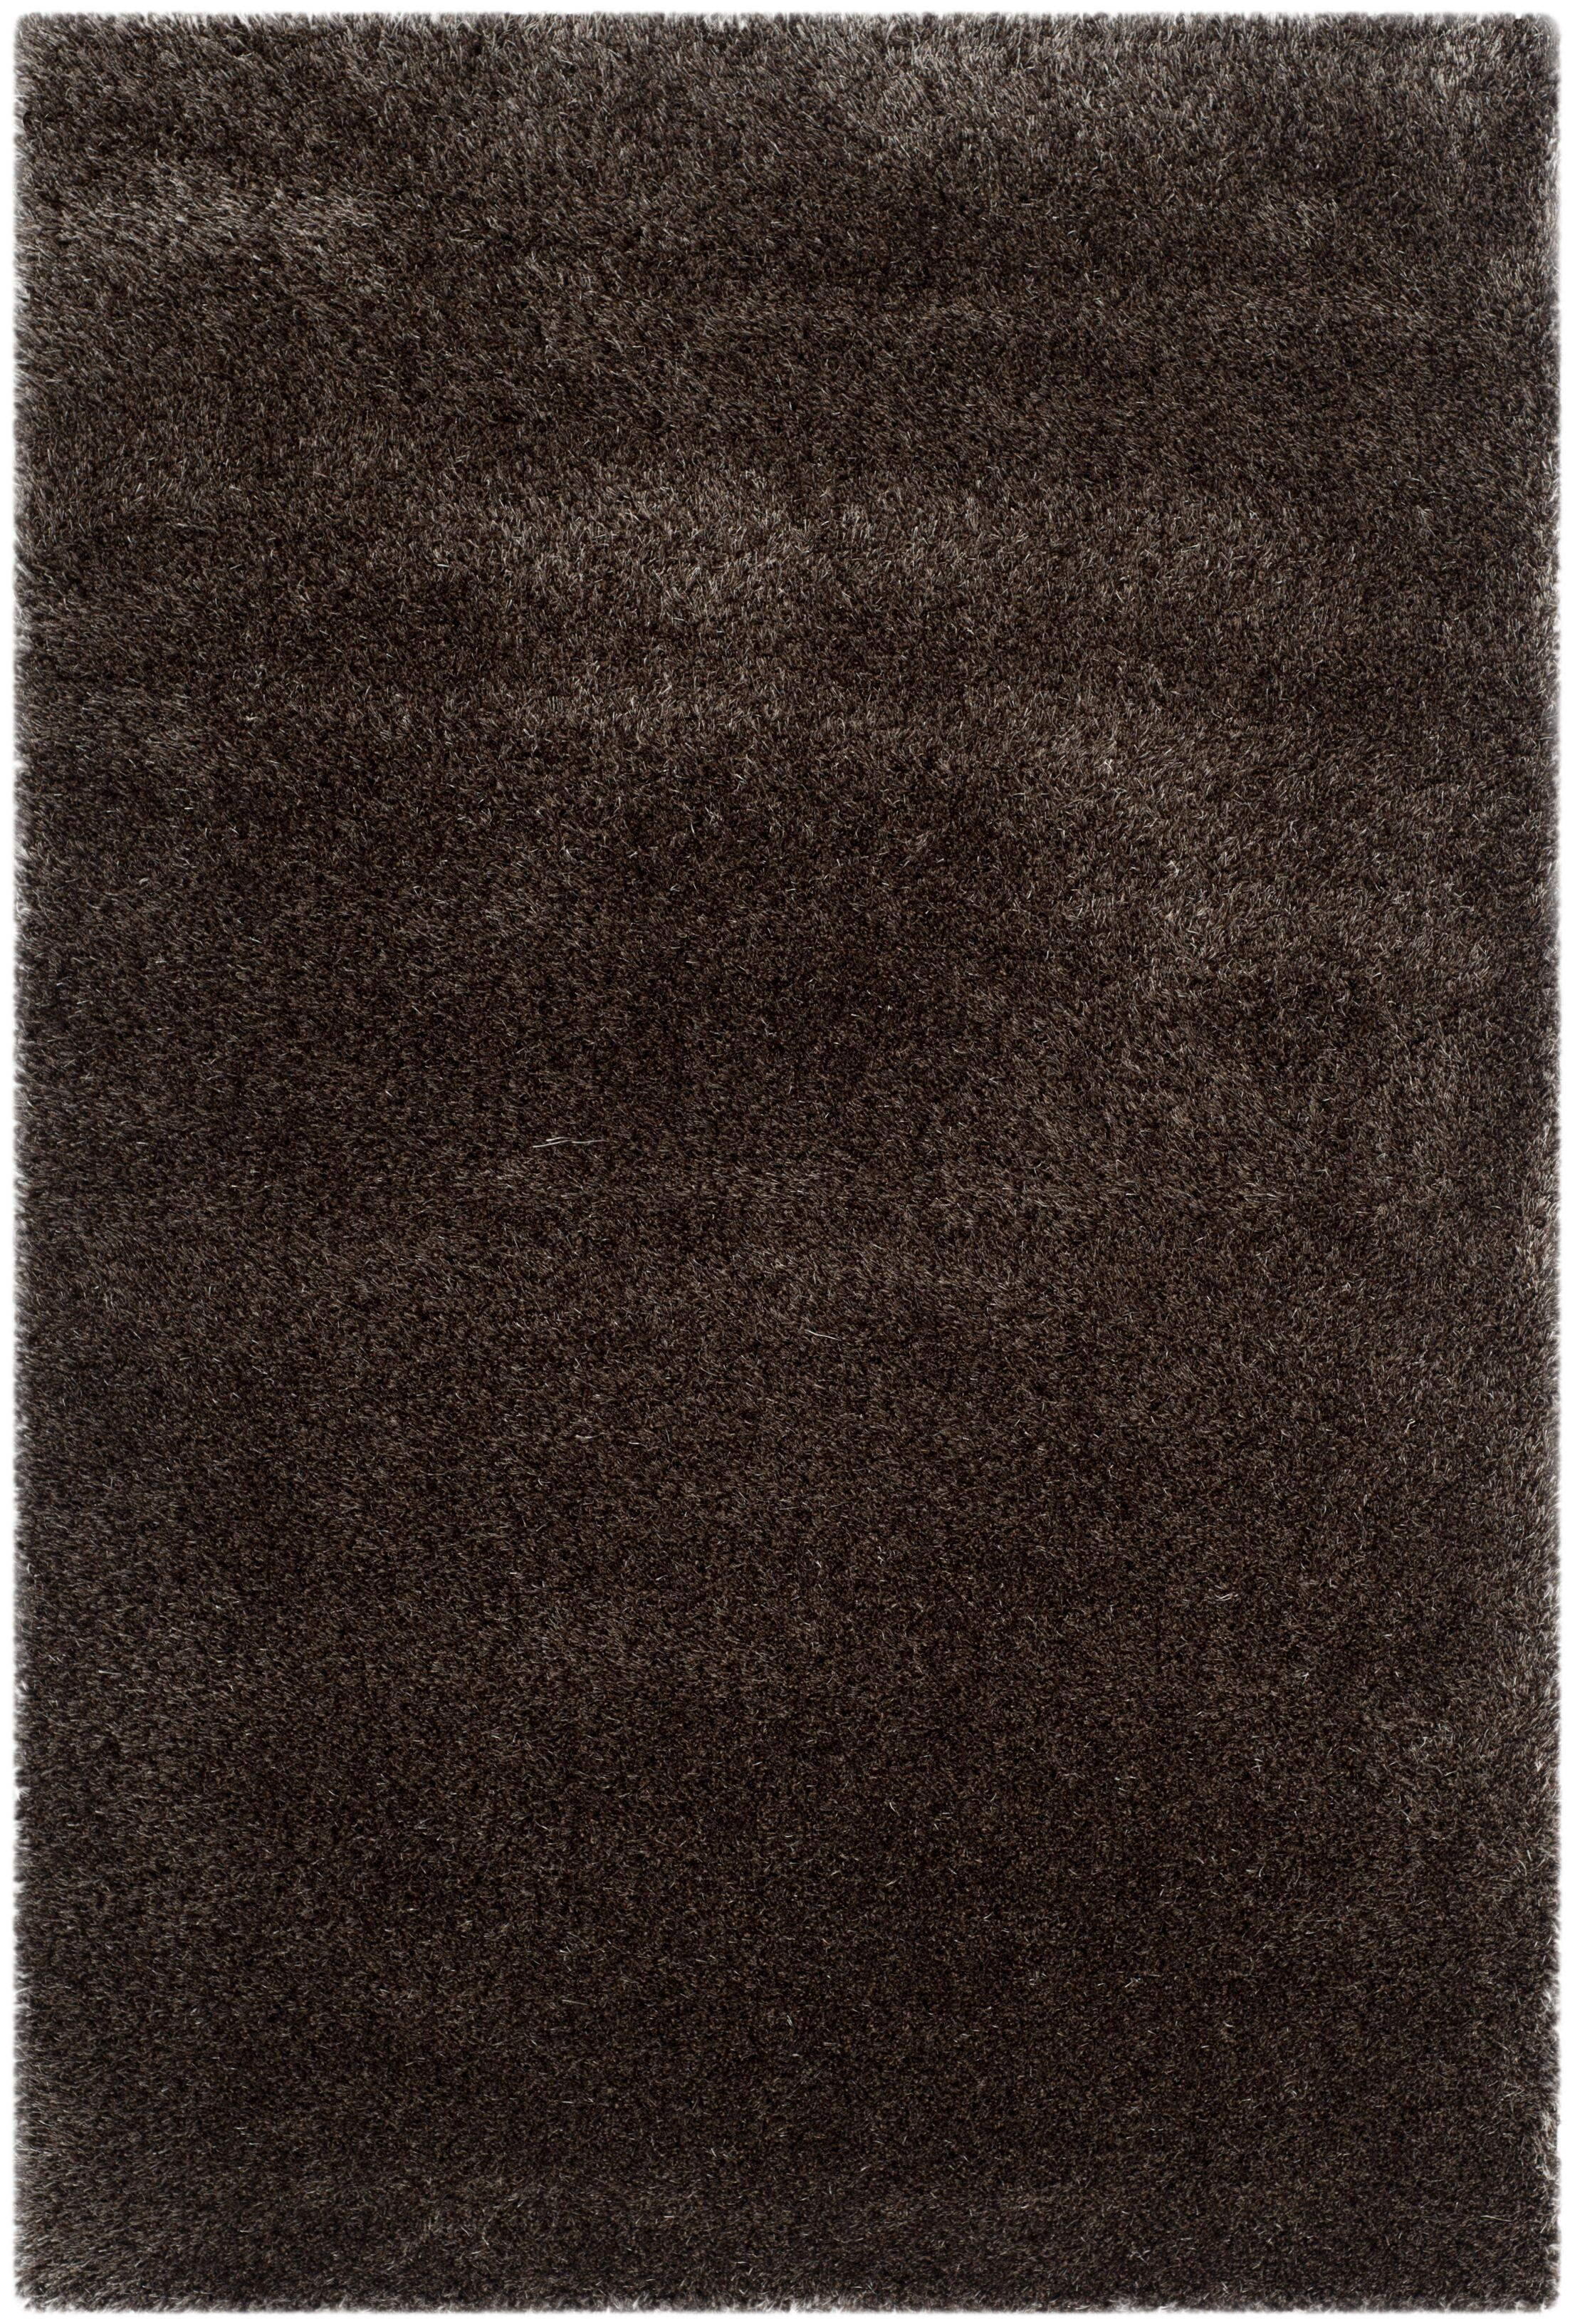 Maya Brown Rug Rug Size: Rectangle 5'1